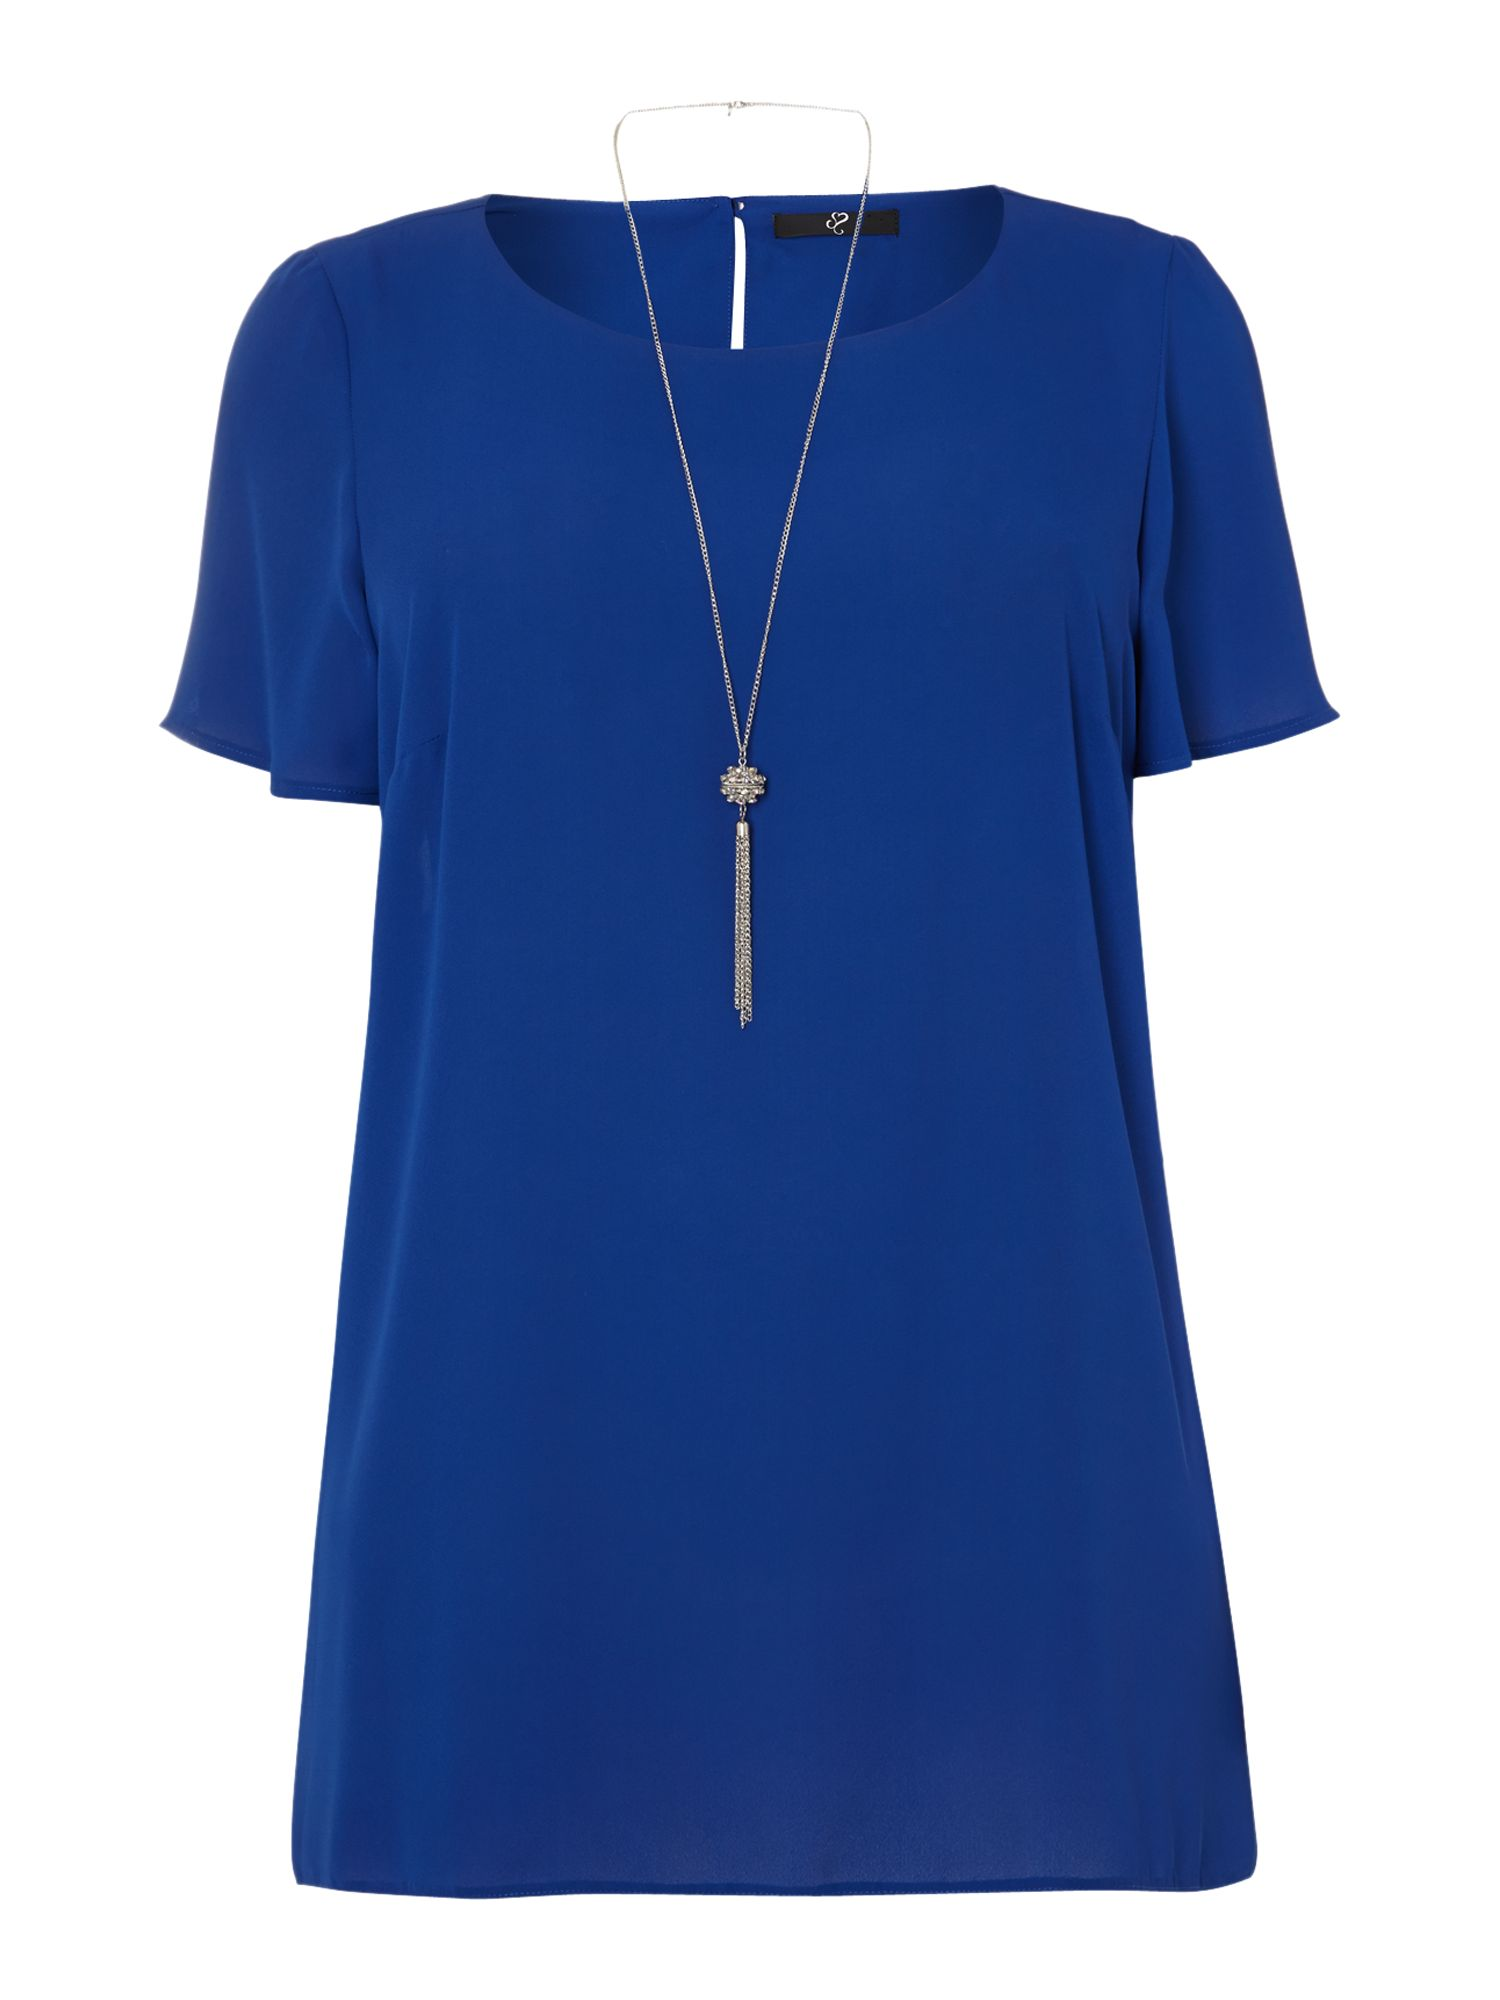 Blue high low hem necklace top